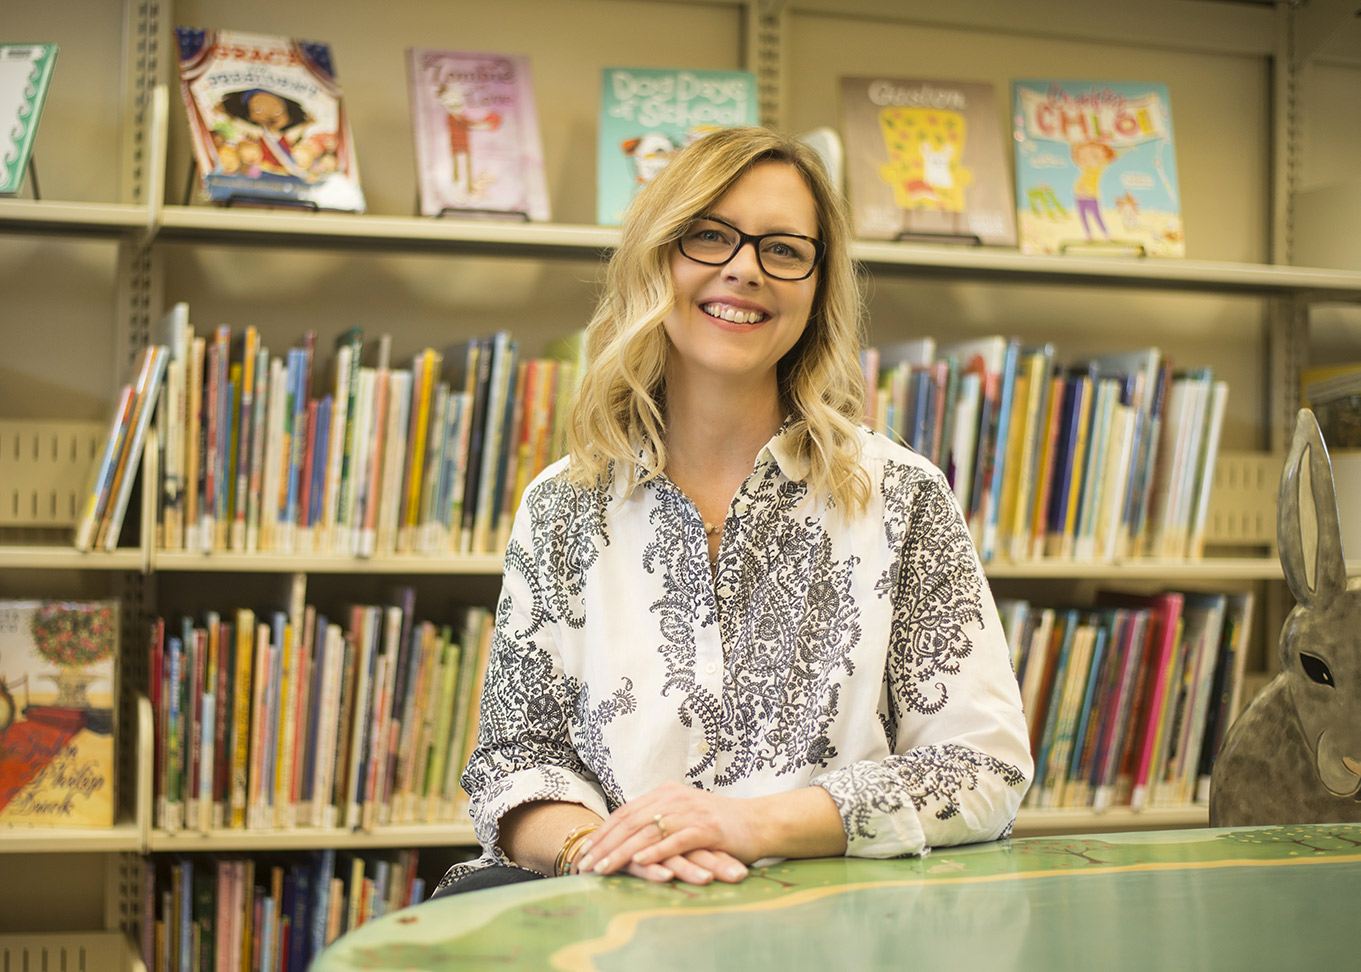 Photograph of NY Times bestselling children's author Kelly DiPucchio, who is seated at a table with four shelves of books in the background.  The top bookshelf showcases 5 books she has written herself